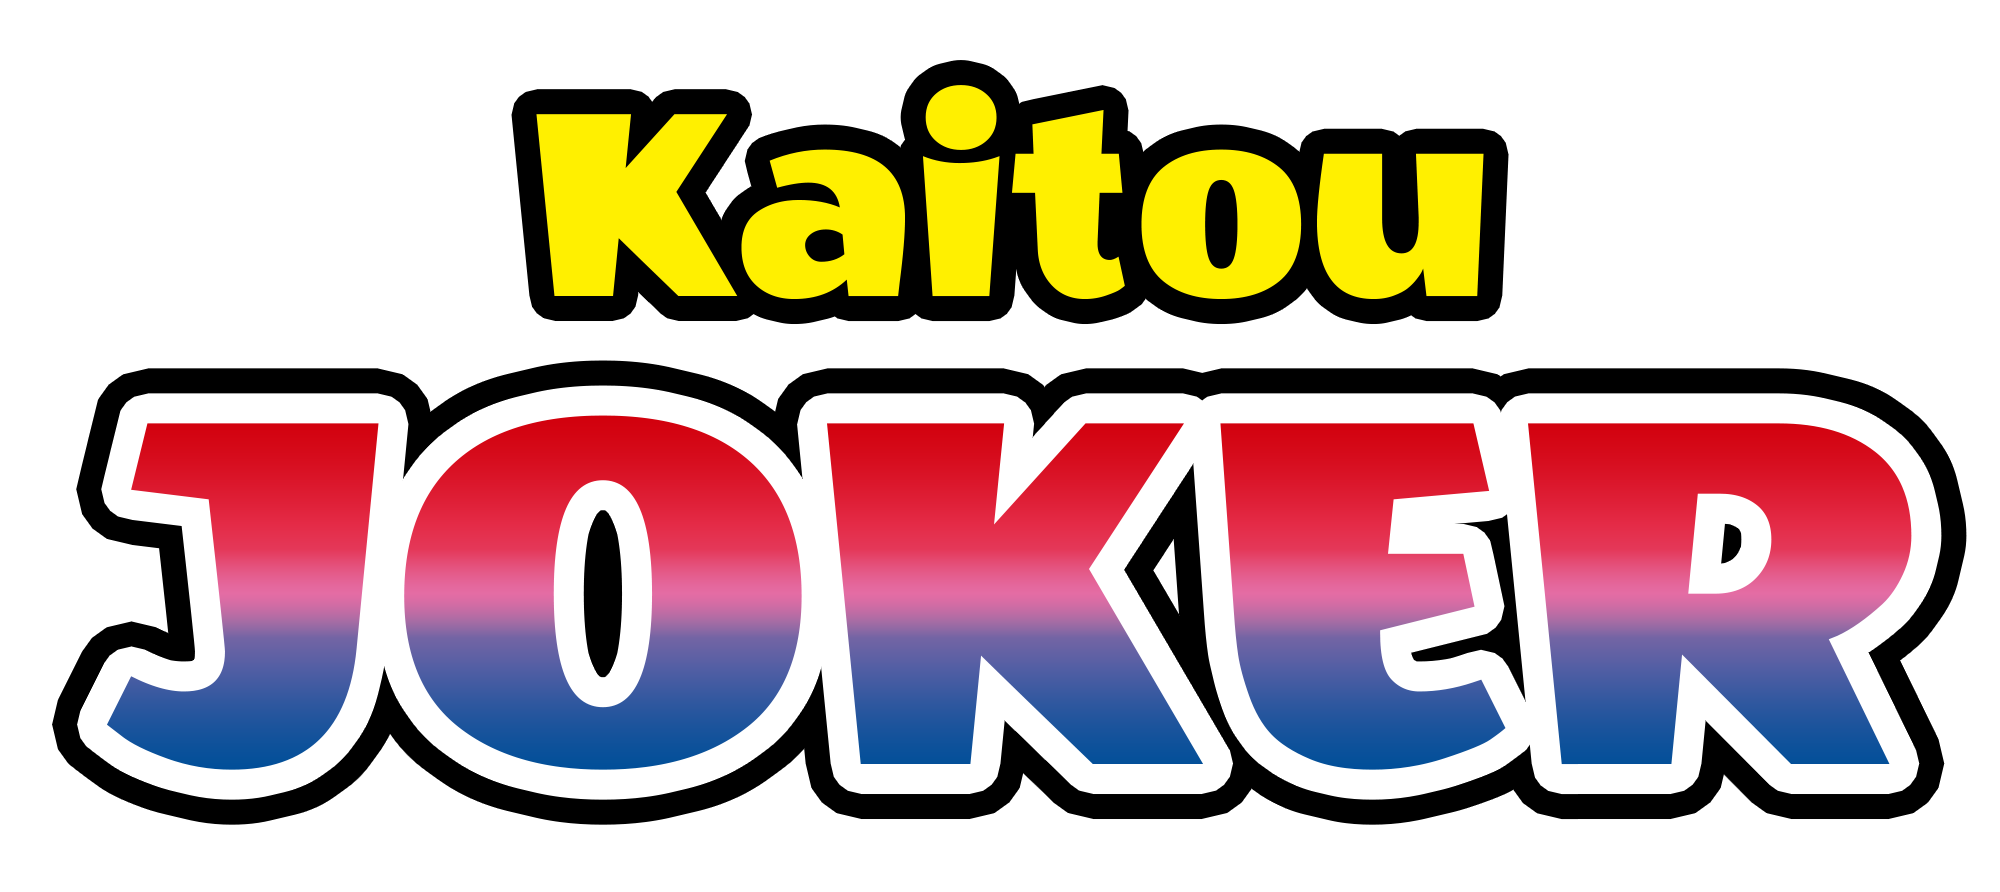 Joker logo png. Image kaitou english wiki